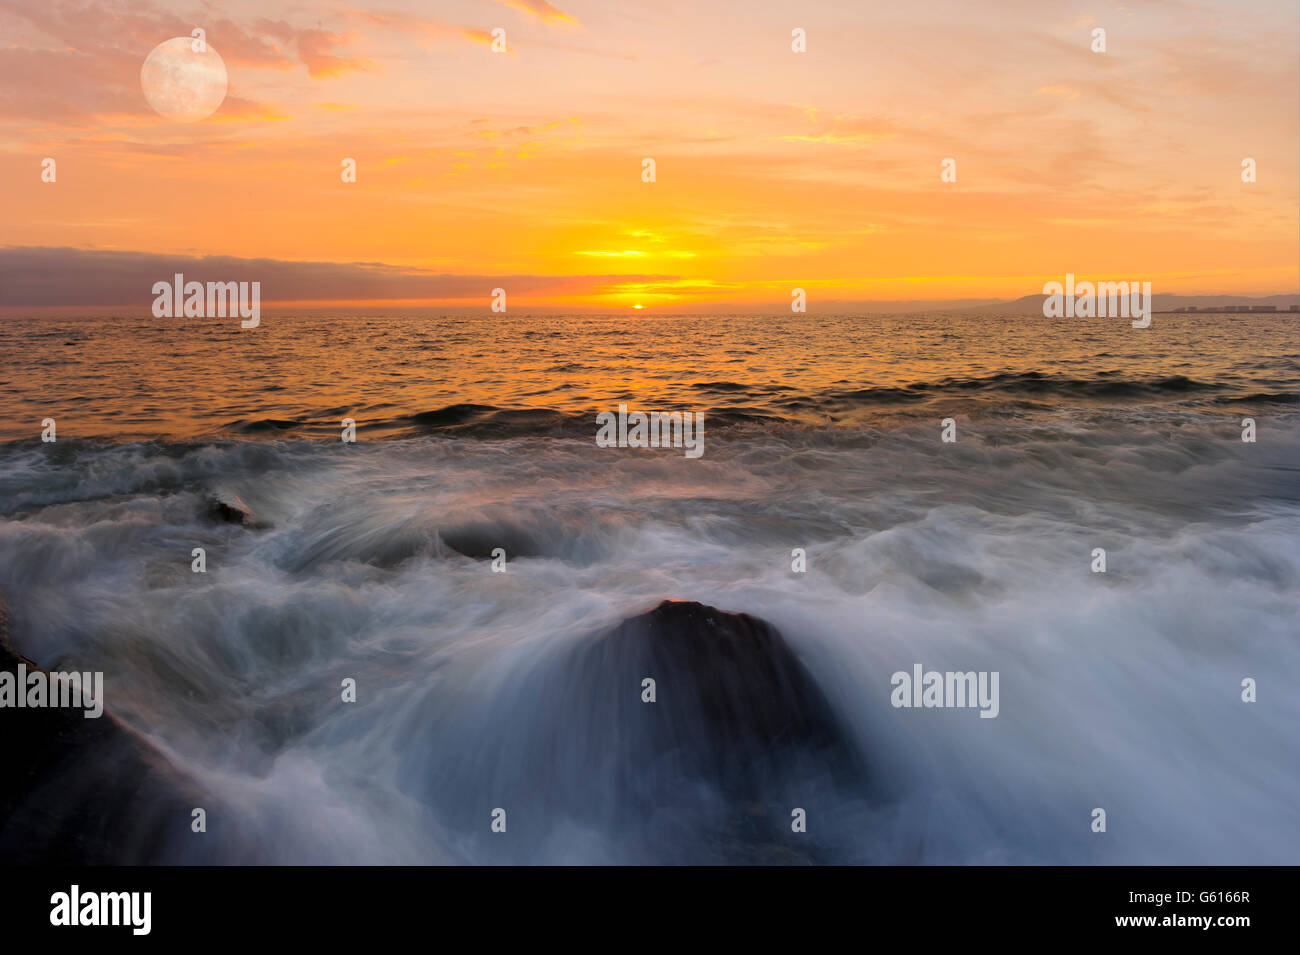 Ocean sunset is a brightly lit golden seascape with a gentle wave rolling to the shore. Stock Photo